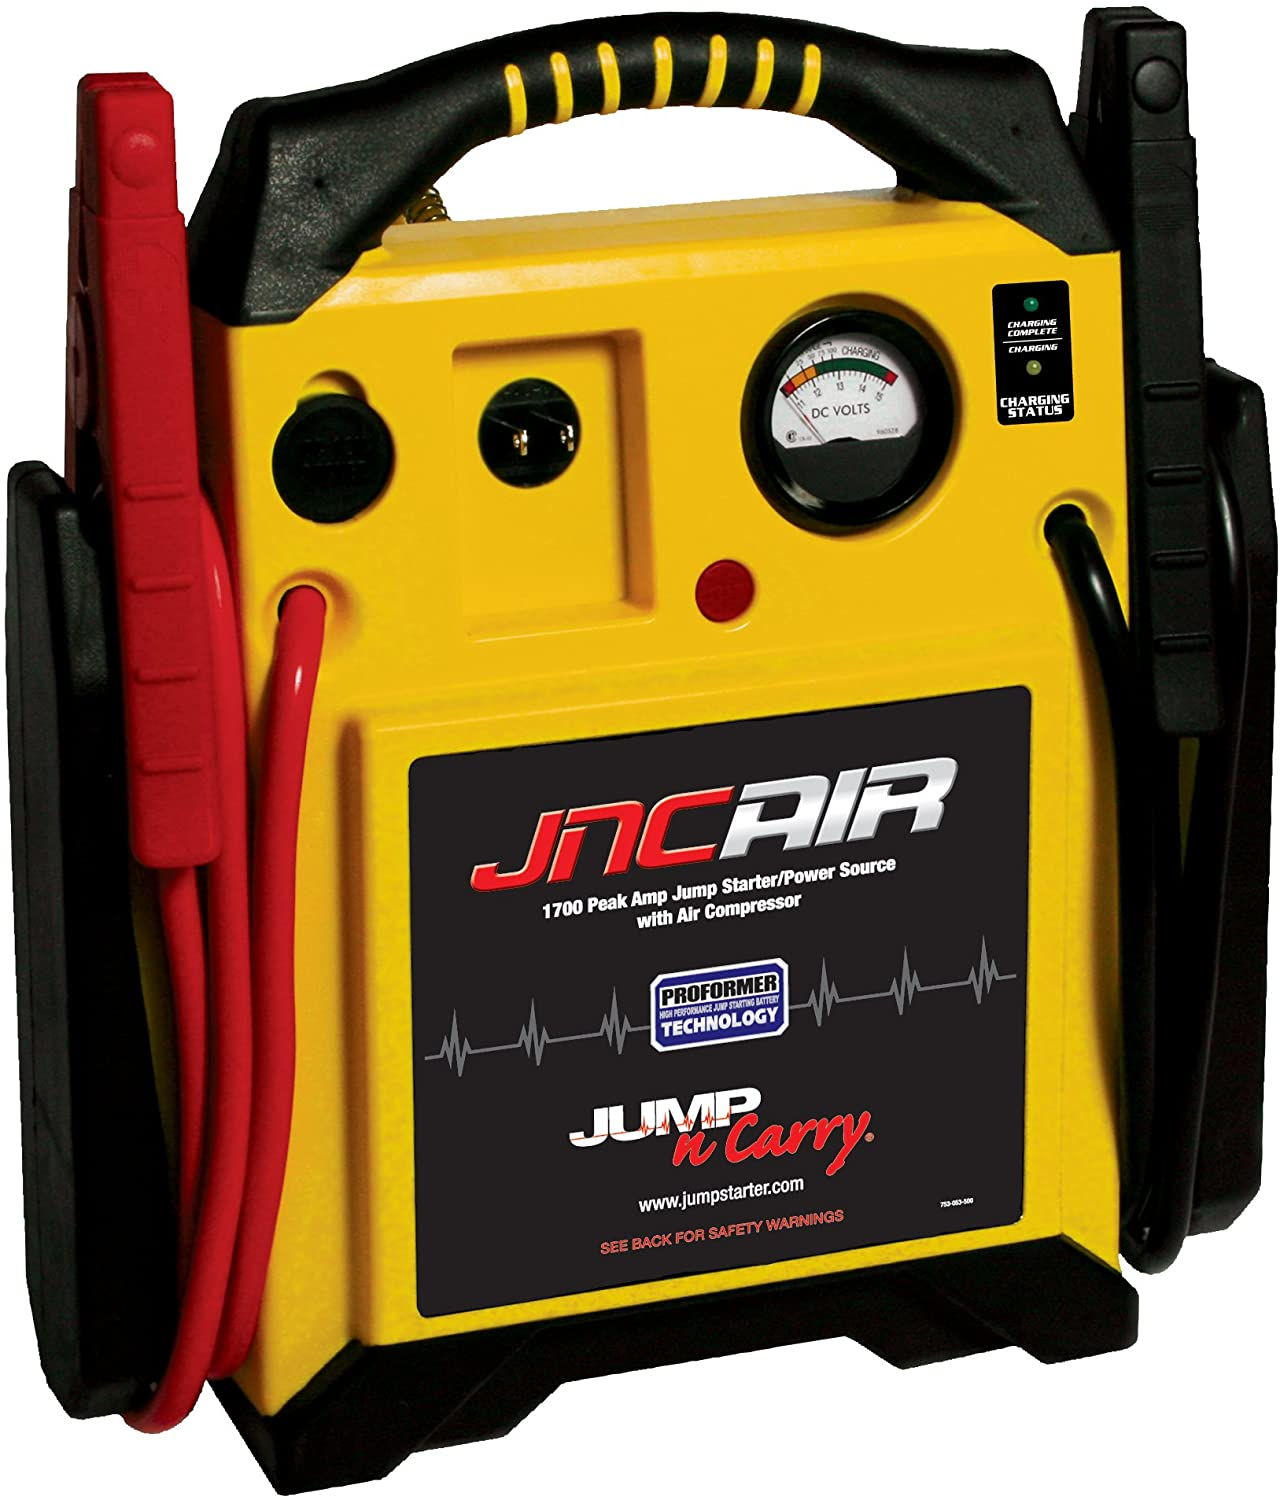 Clore Automotive JNCAIR 1700 Peak Jump-N-Carry Jump Starter